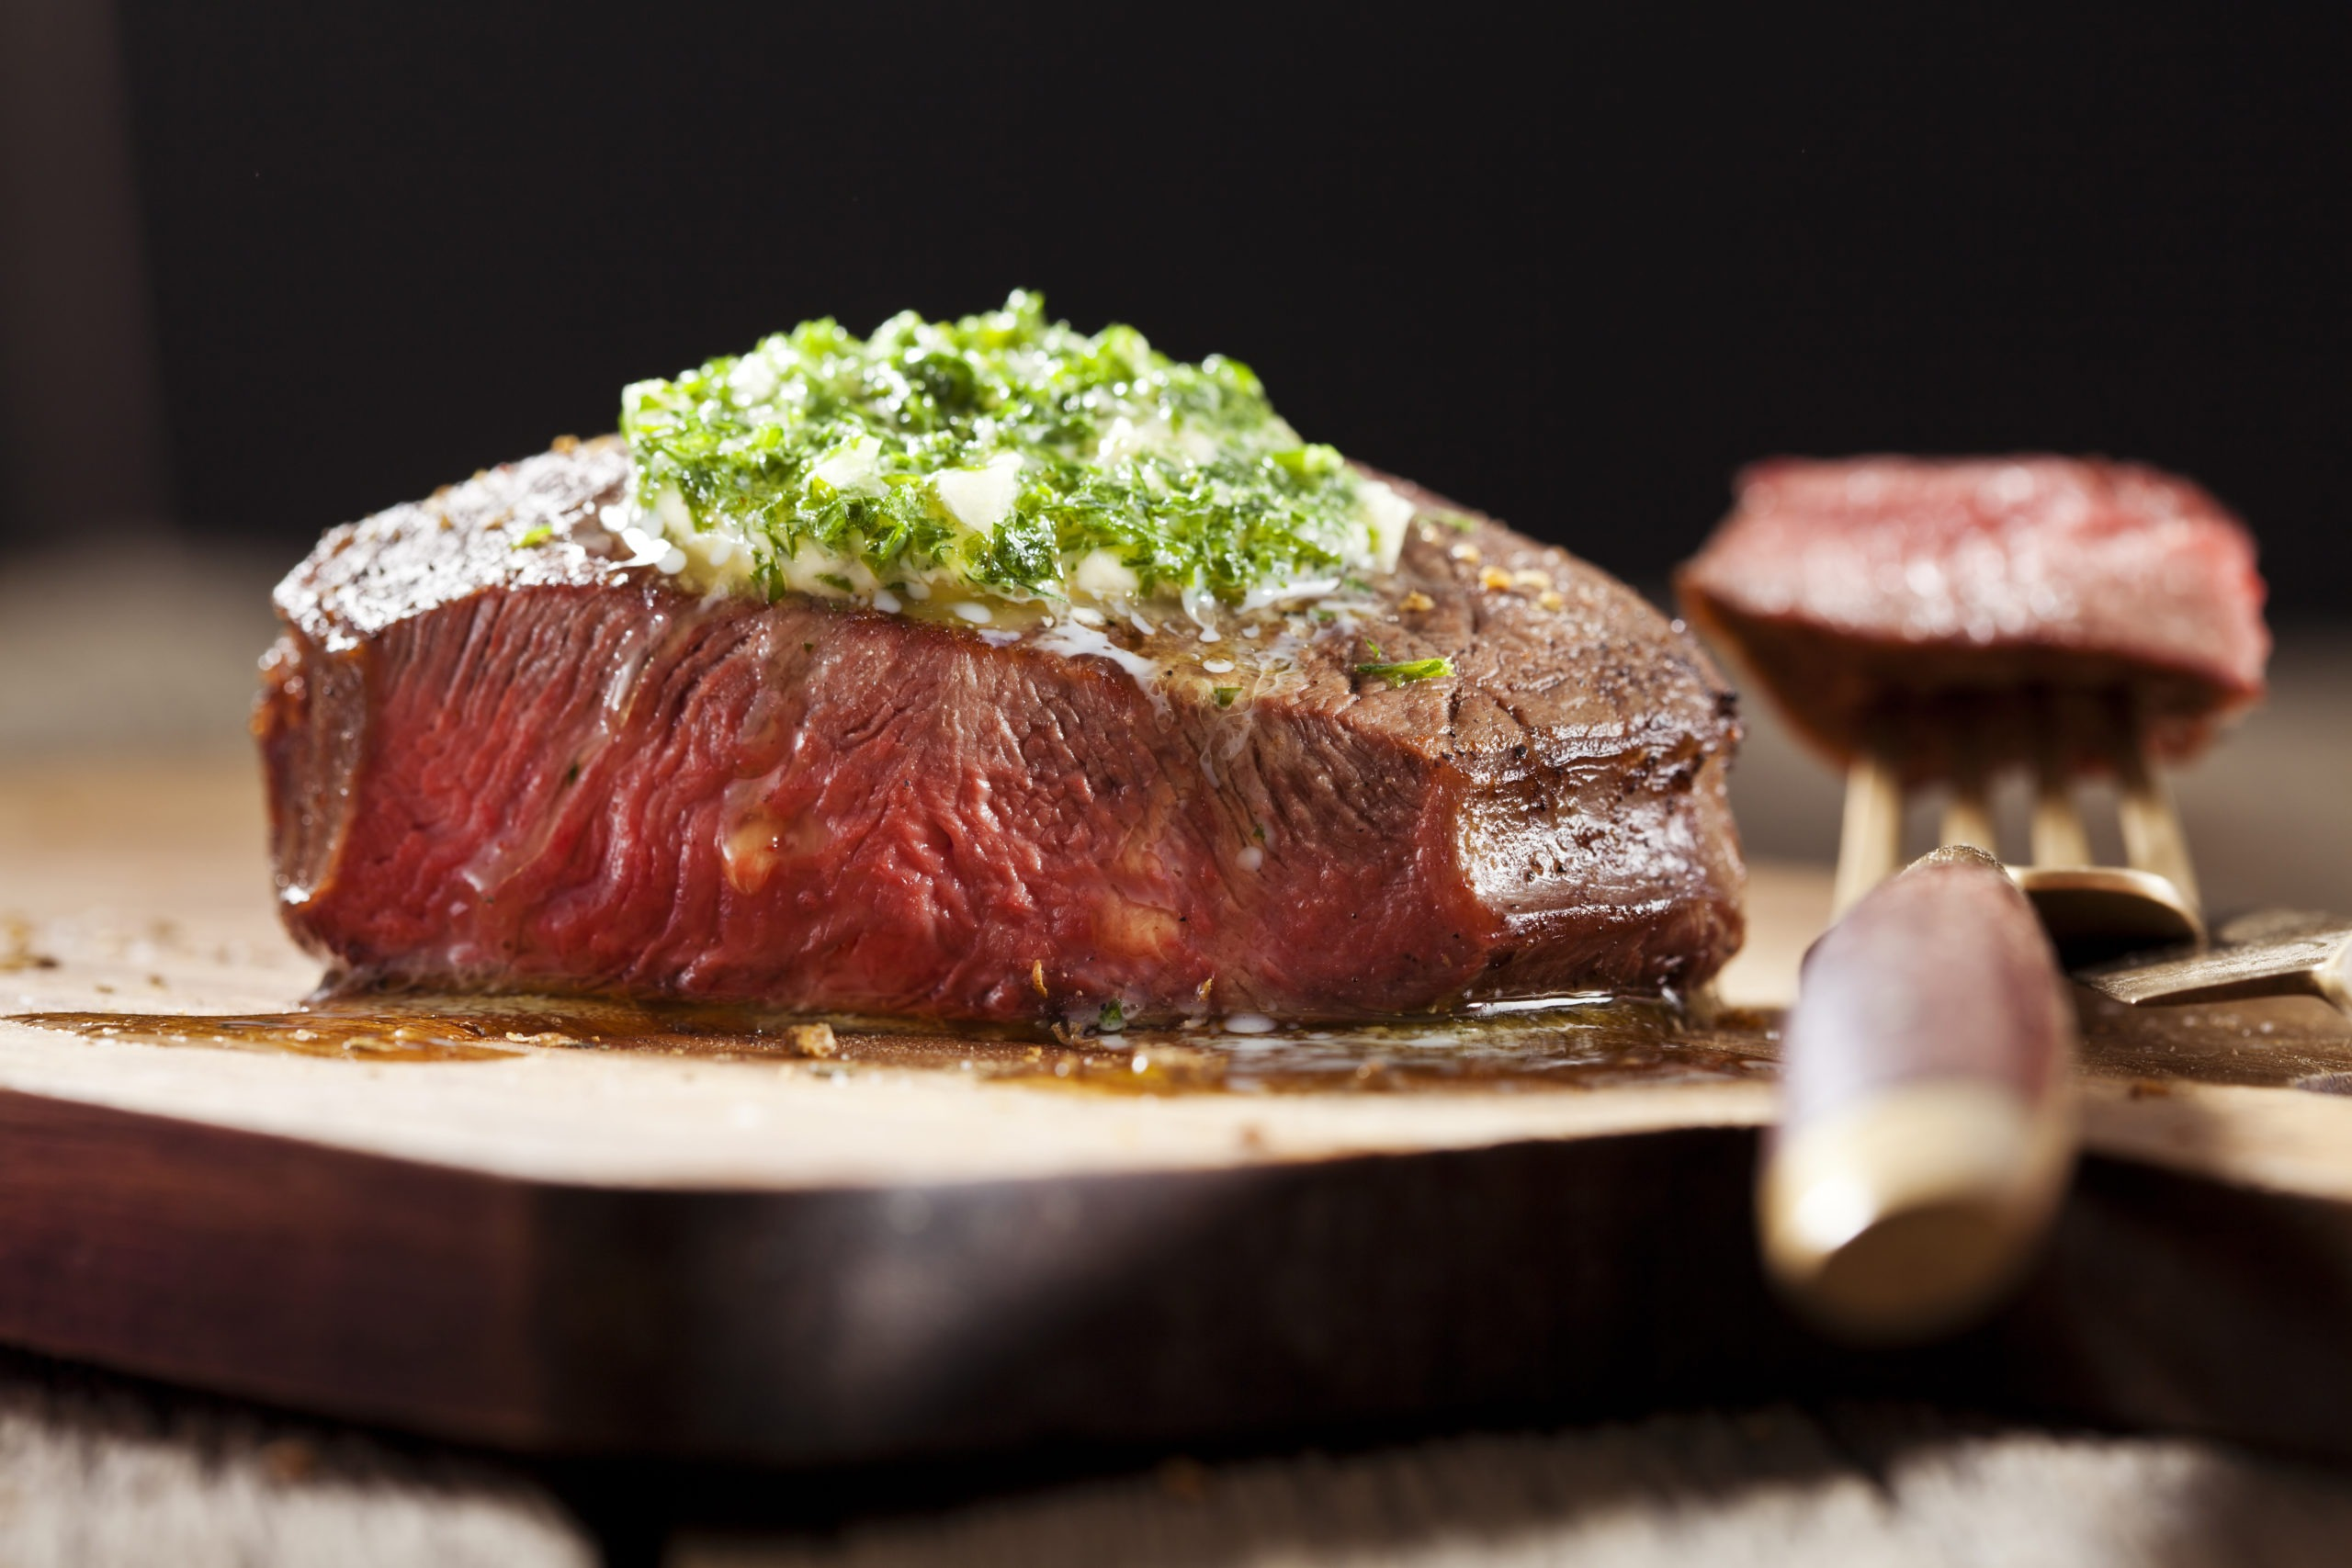 Bison Top Sirloin Steak with Garlic Butter article image